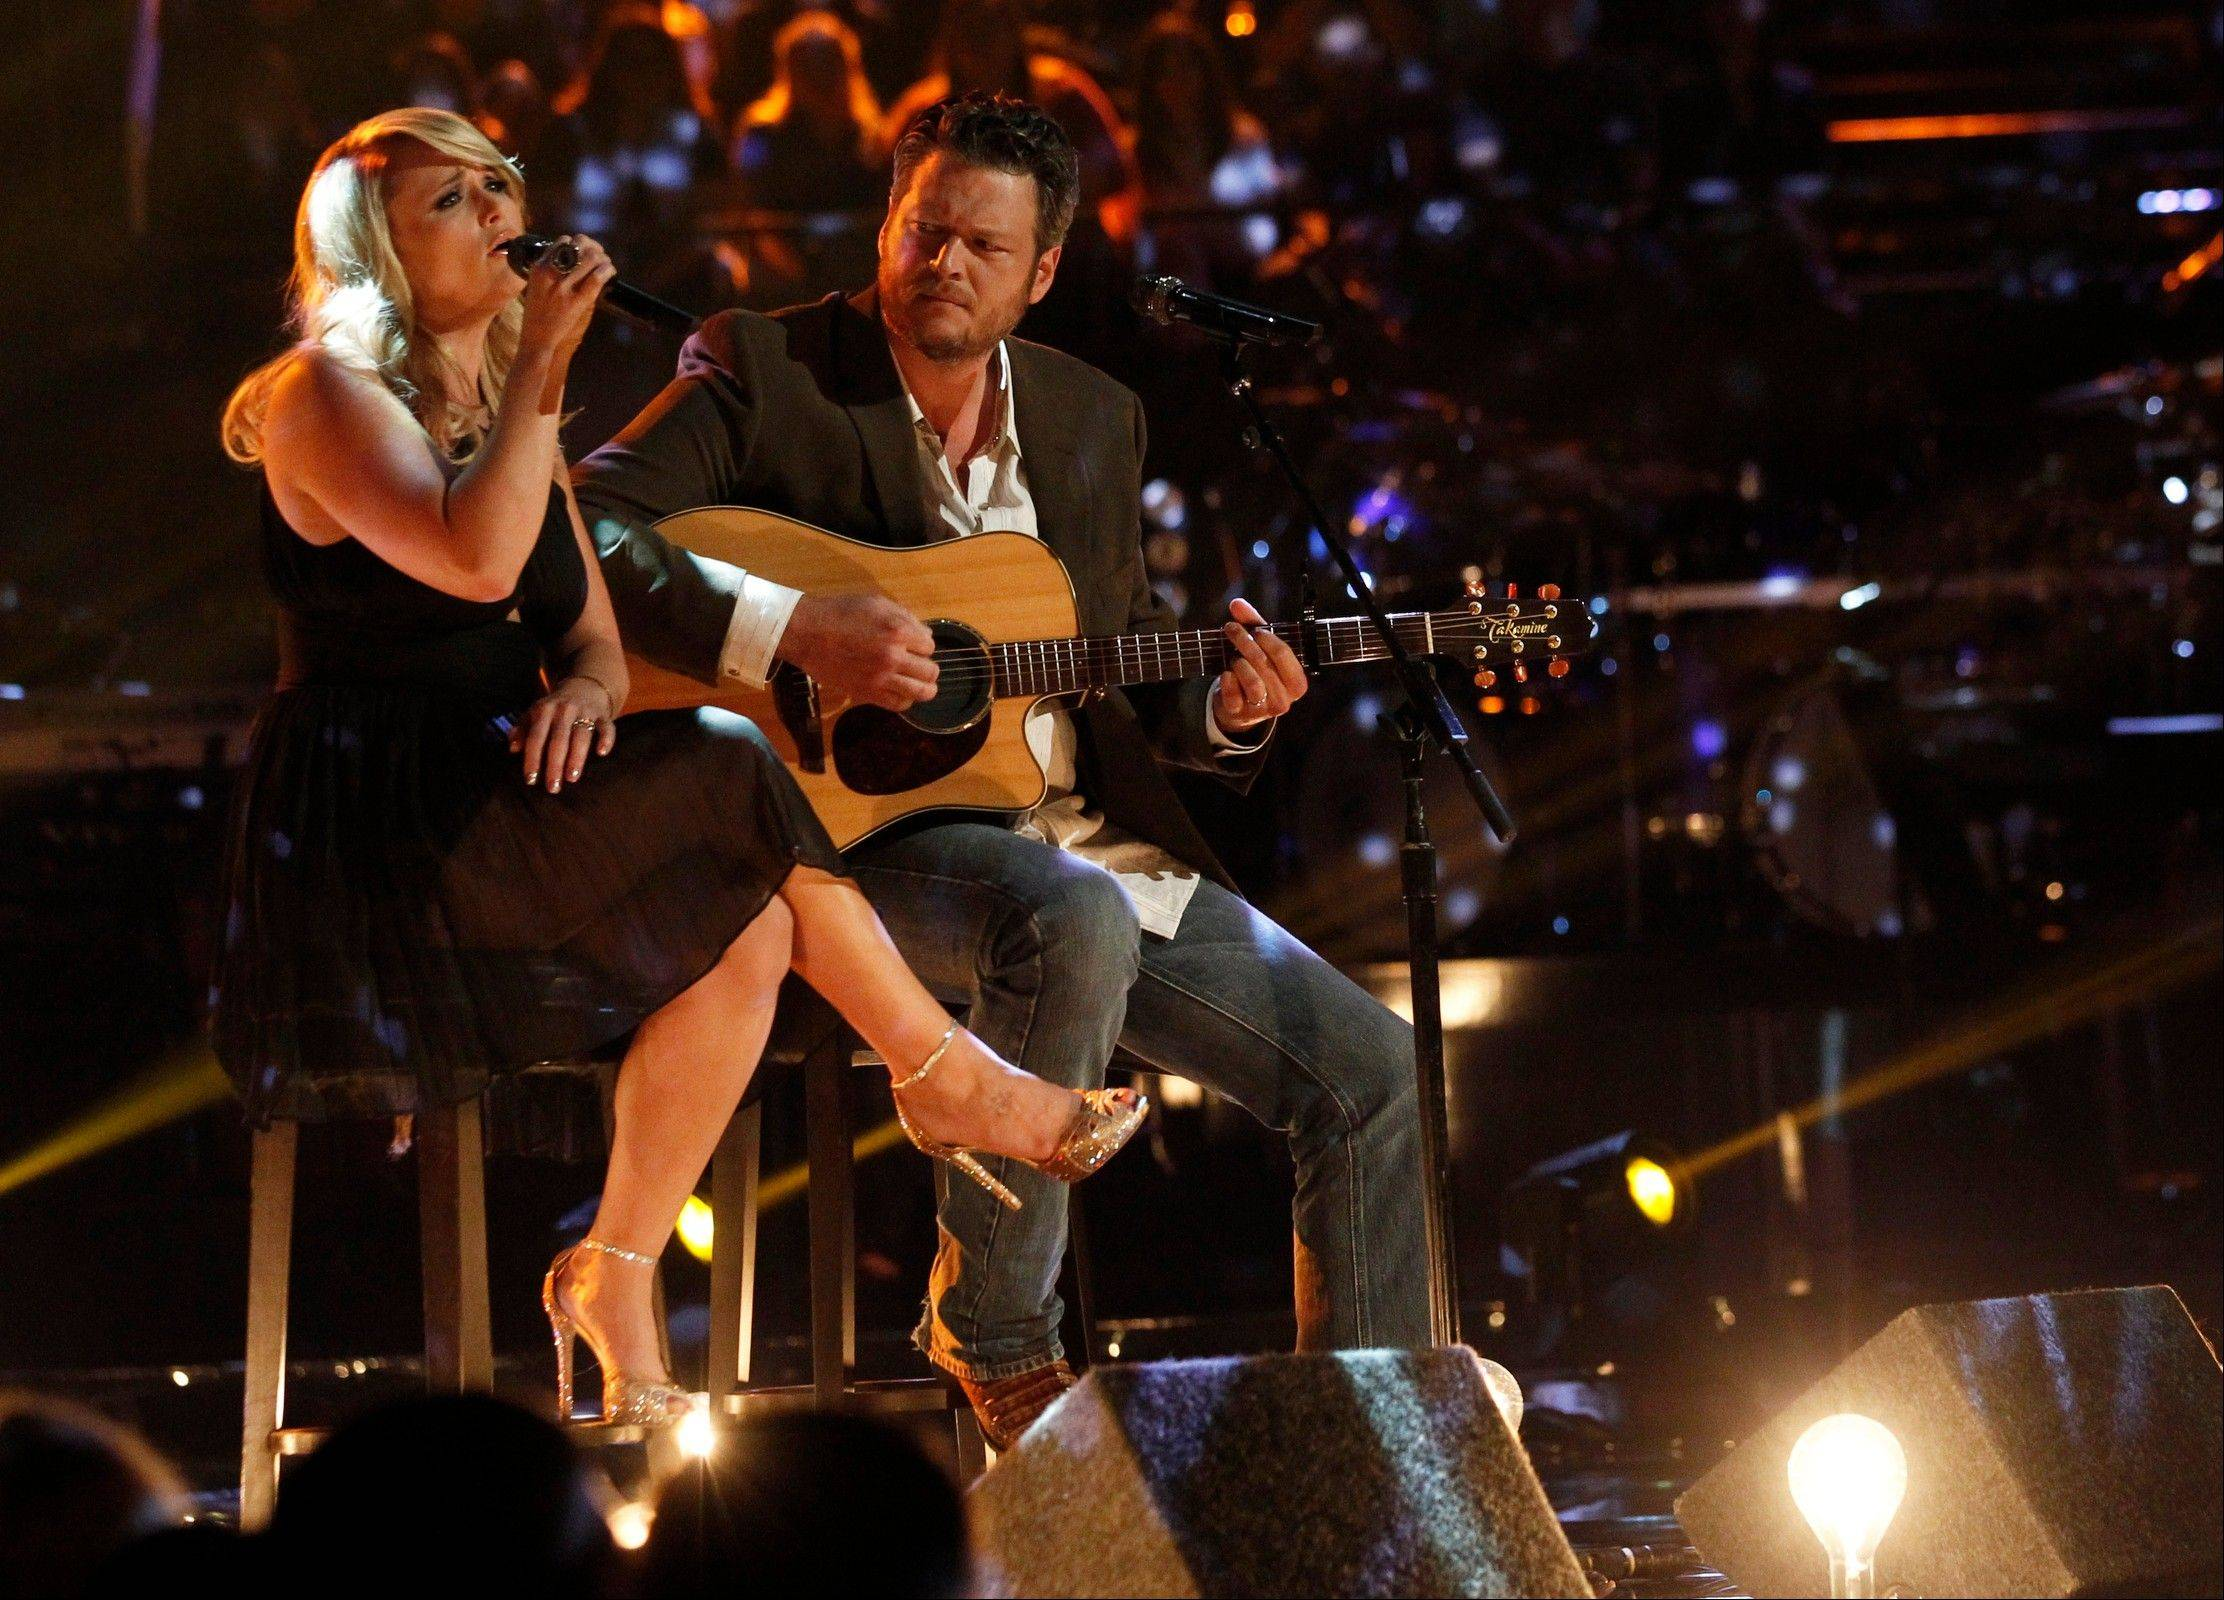 Miranda Lambert and Blake Shelton paid tribute to those in Oklahoma affected by the recent tornadoes by performing an acoustic version of the hit �Over You� during a broadcast of �The Voice.�